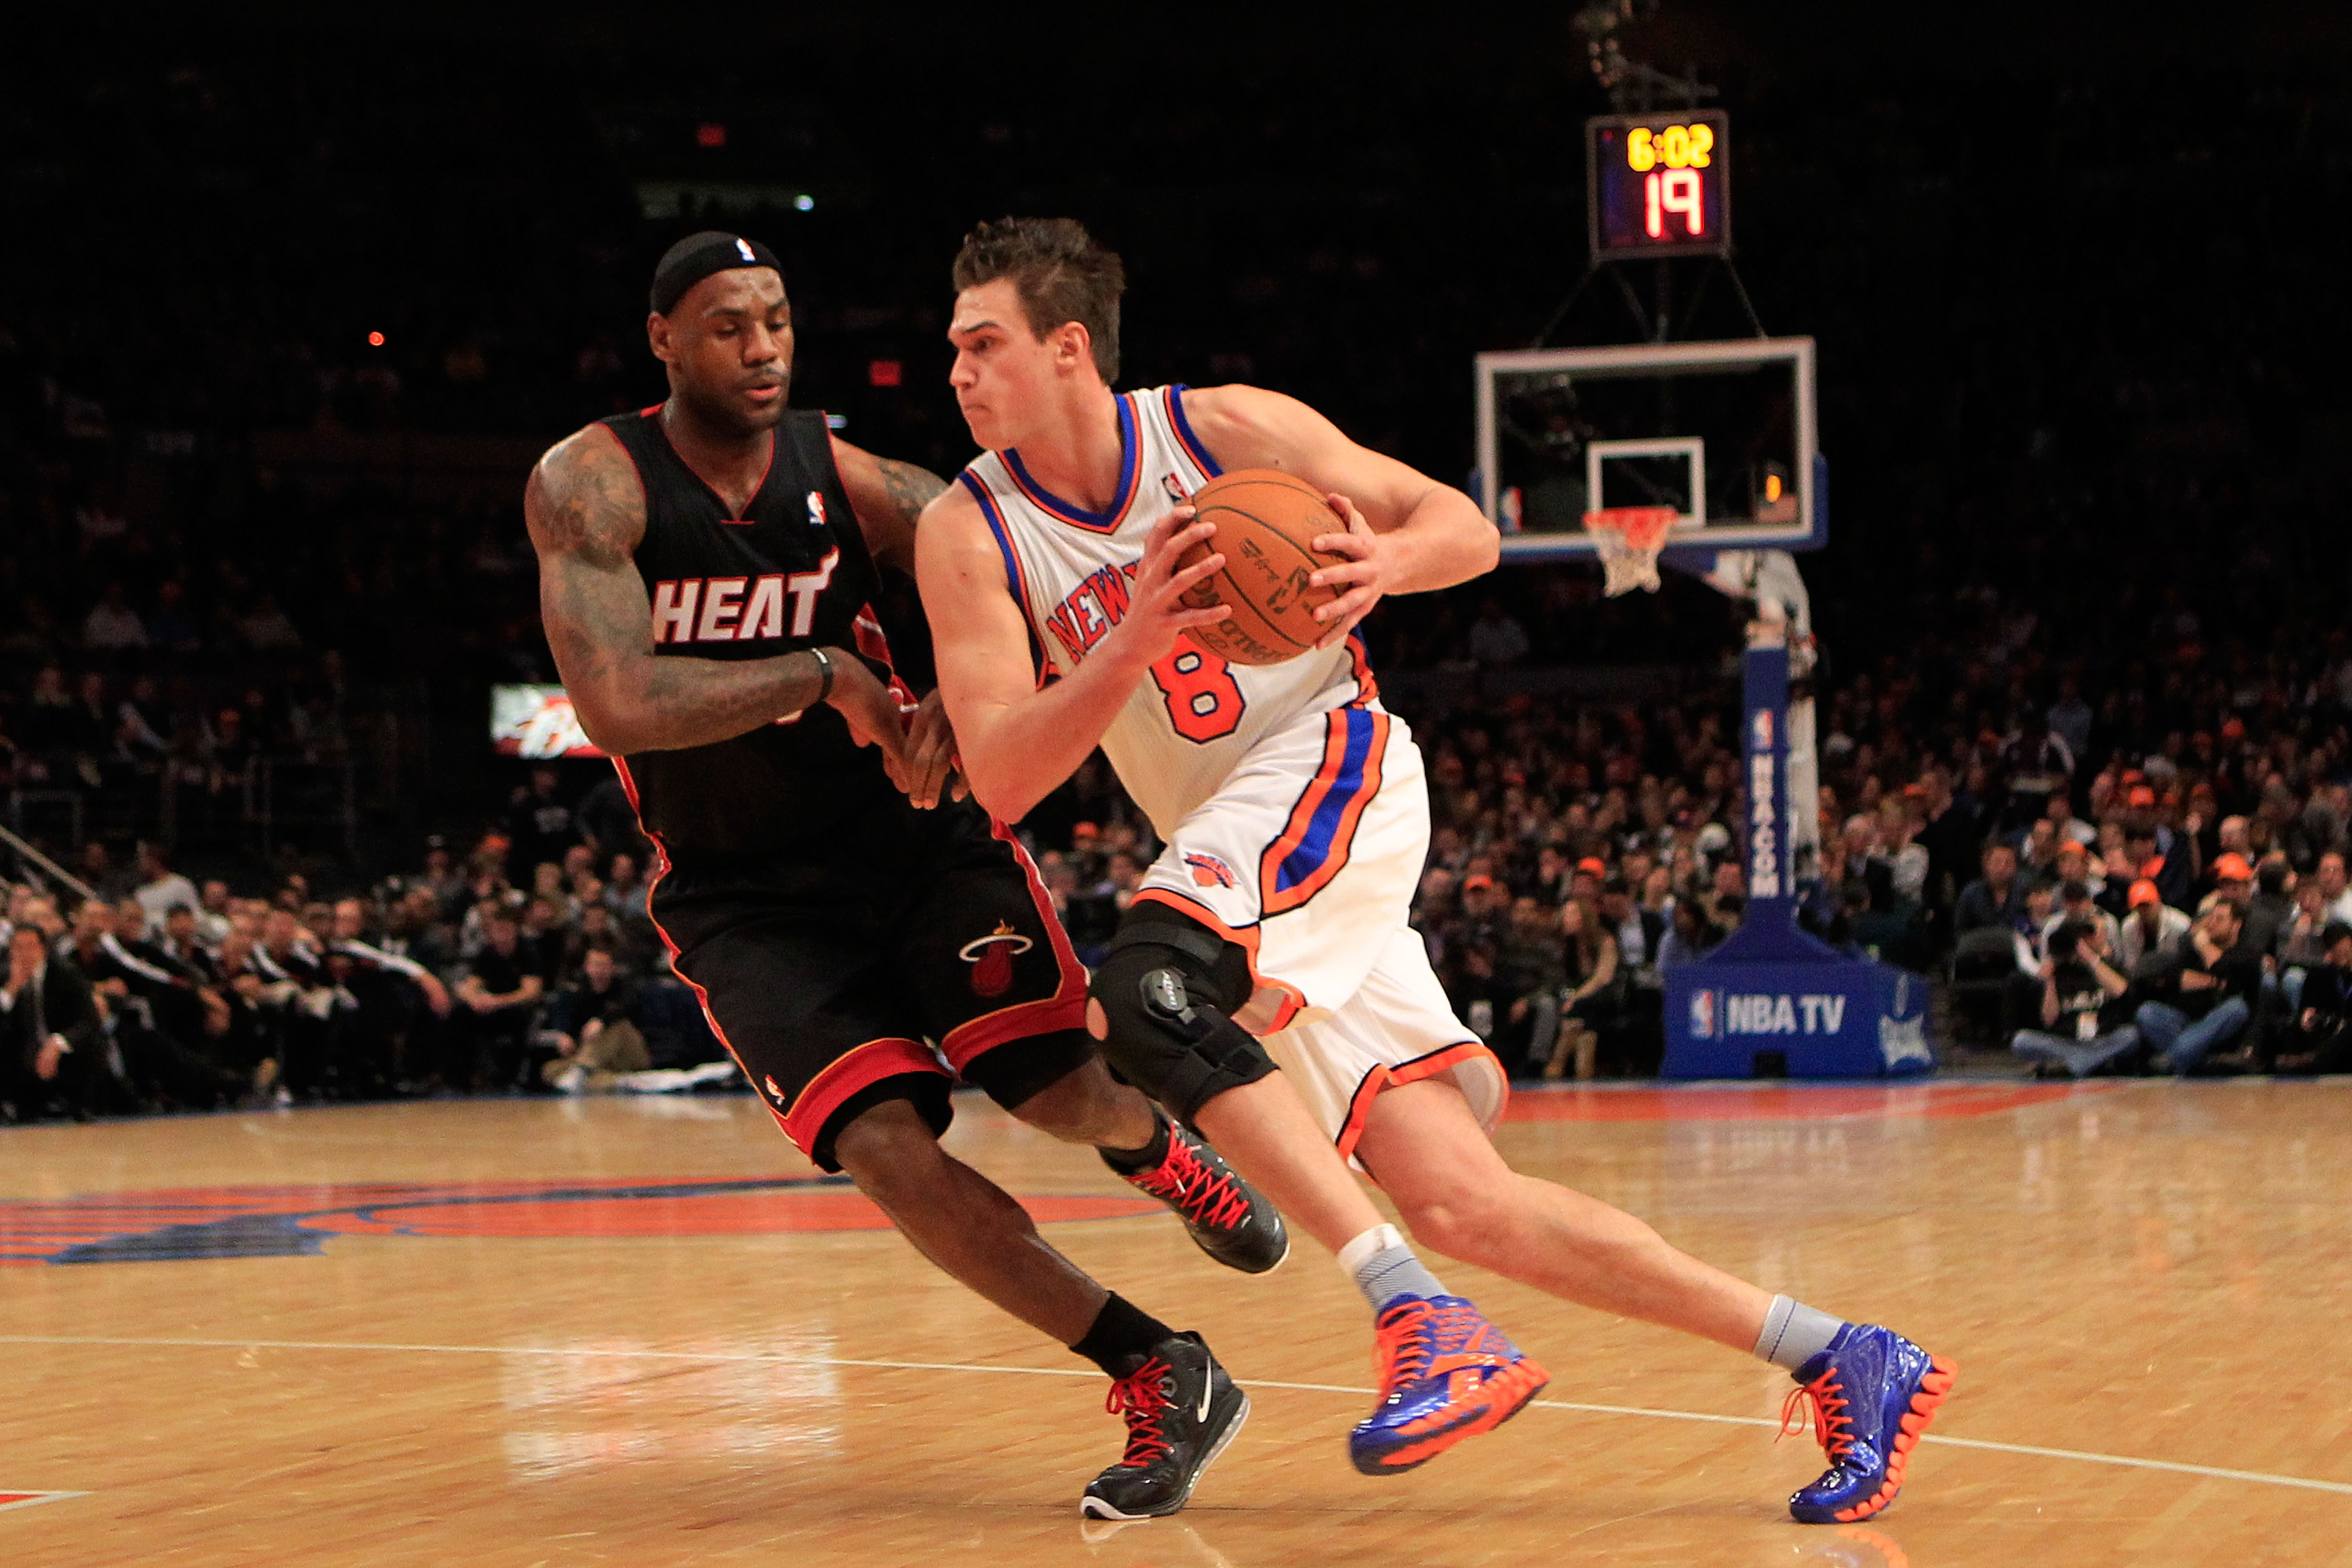 NEW YORK, NY - JANUARY 27:  Danilo Gallinari #8 of the New York Knicks drives past LeBron James #6 of the Miami Heat at Madison Square Garden on January 27, 2011 in New York City. NOTE TO USER: User expressly acknowledges and agrees that, by downloading a